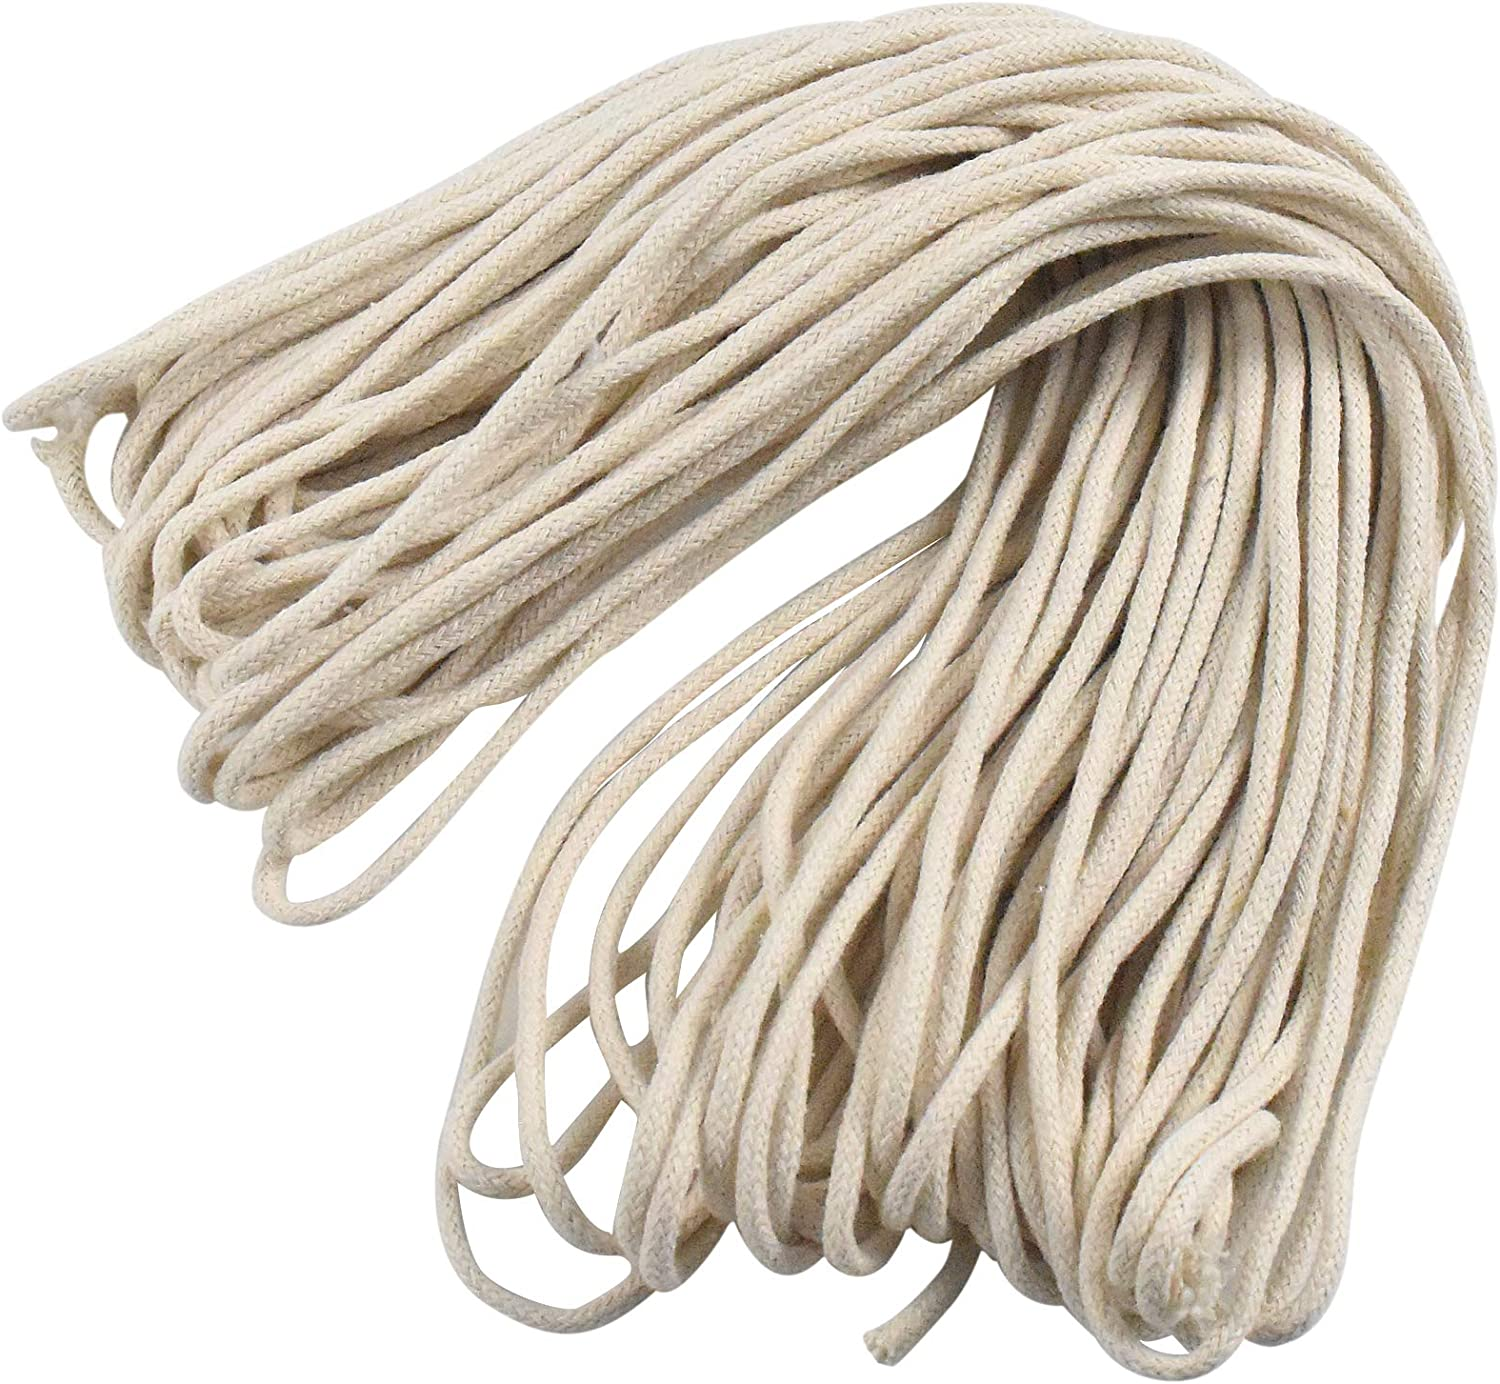 Length 82 ft//Roll Lamp Wick Round Cotton Wick Braided Oil Lamp Wire Light Wick Kerosene Wick Lantern Wick for Oil Burners Candle Wick Cotton Replacement Wick Diameter 0.19 inch